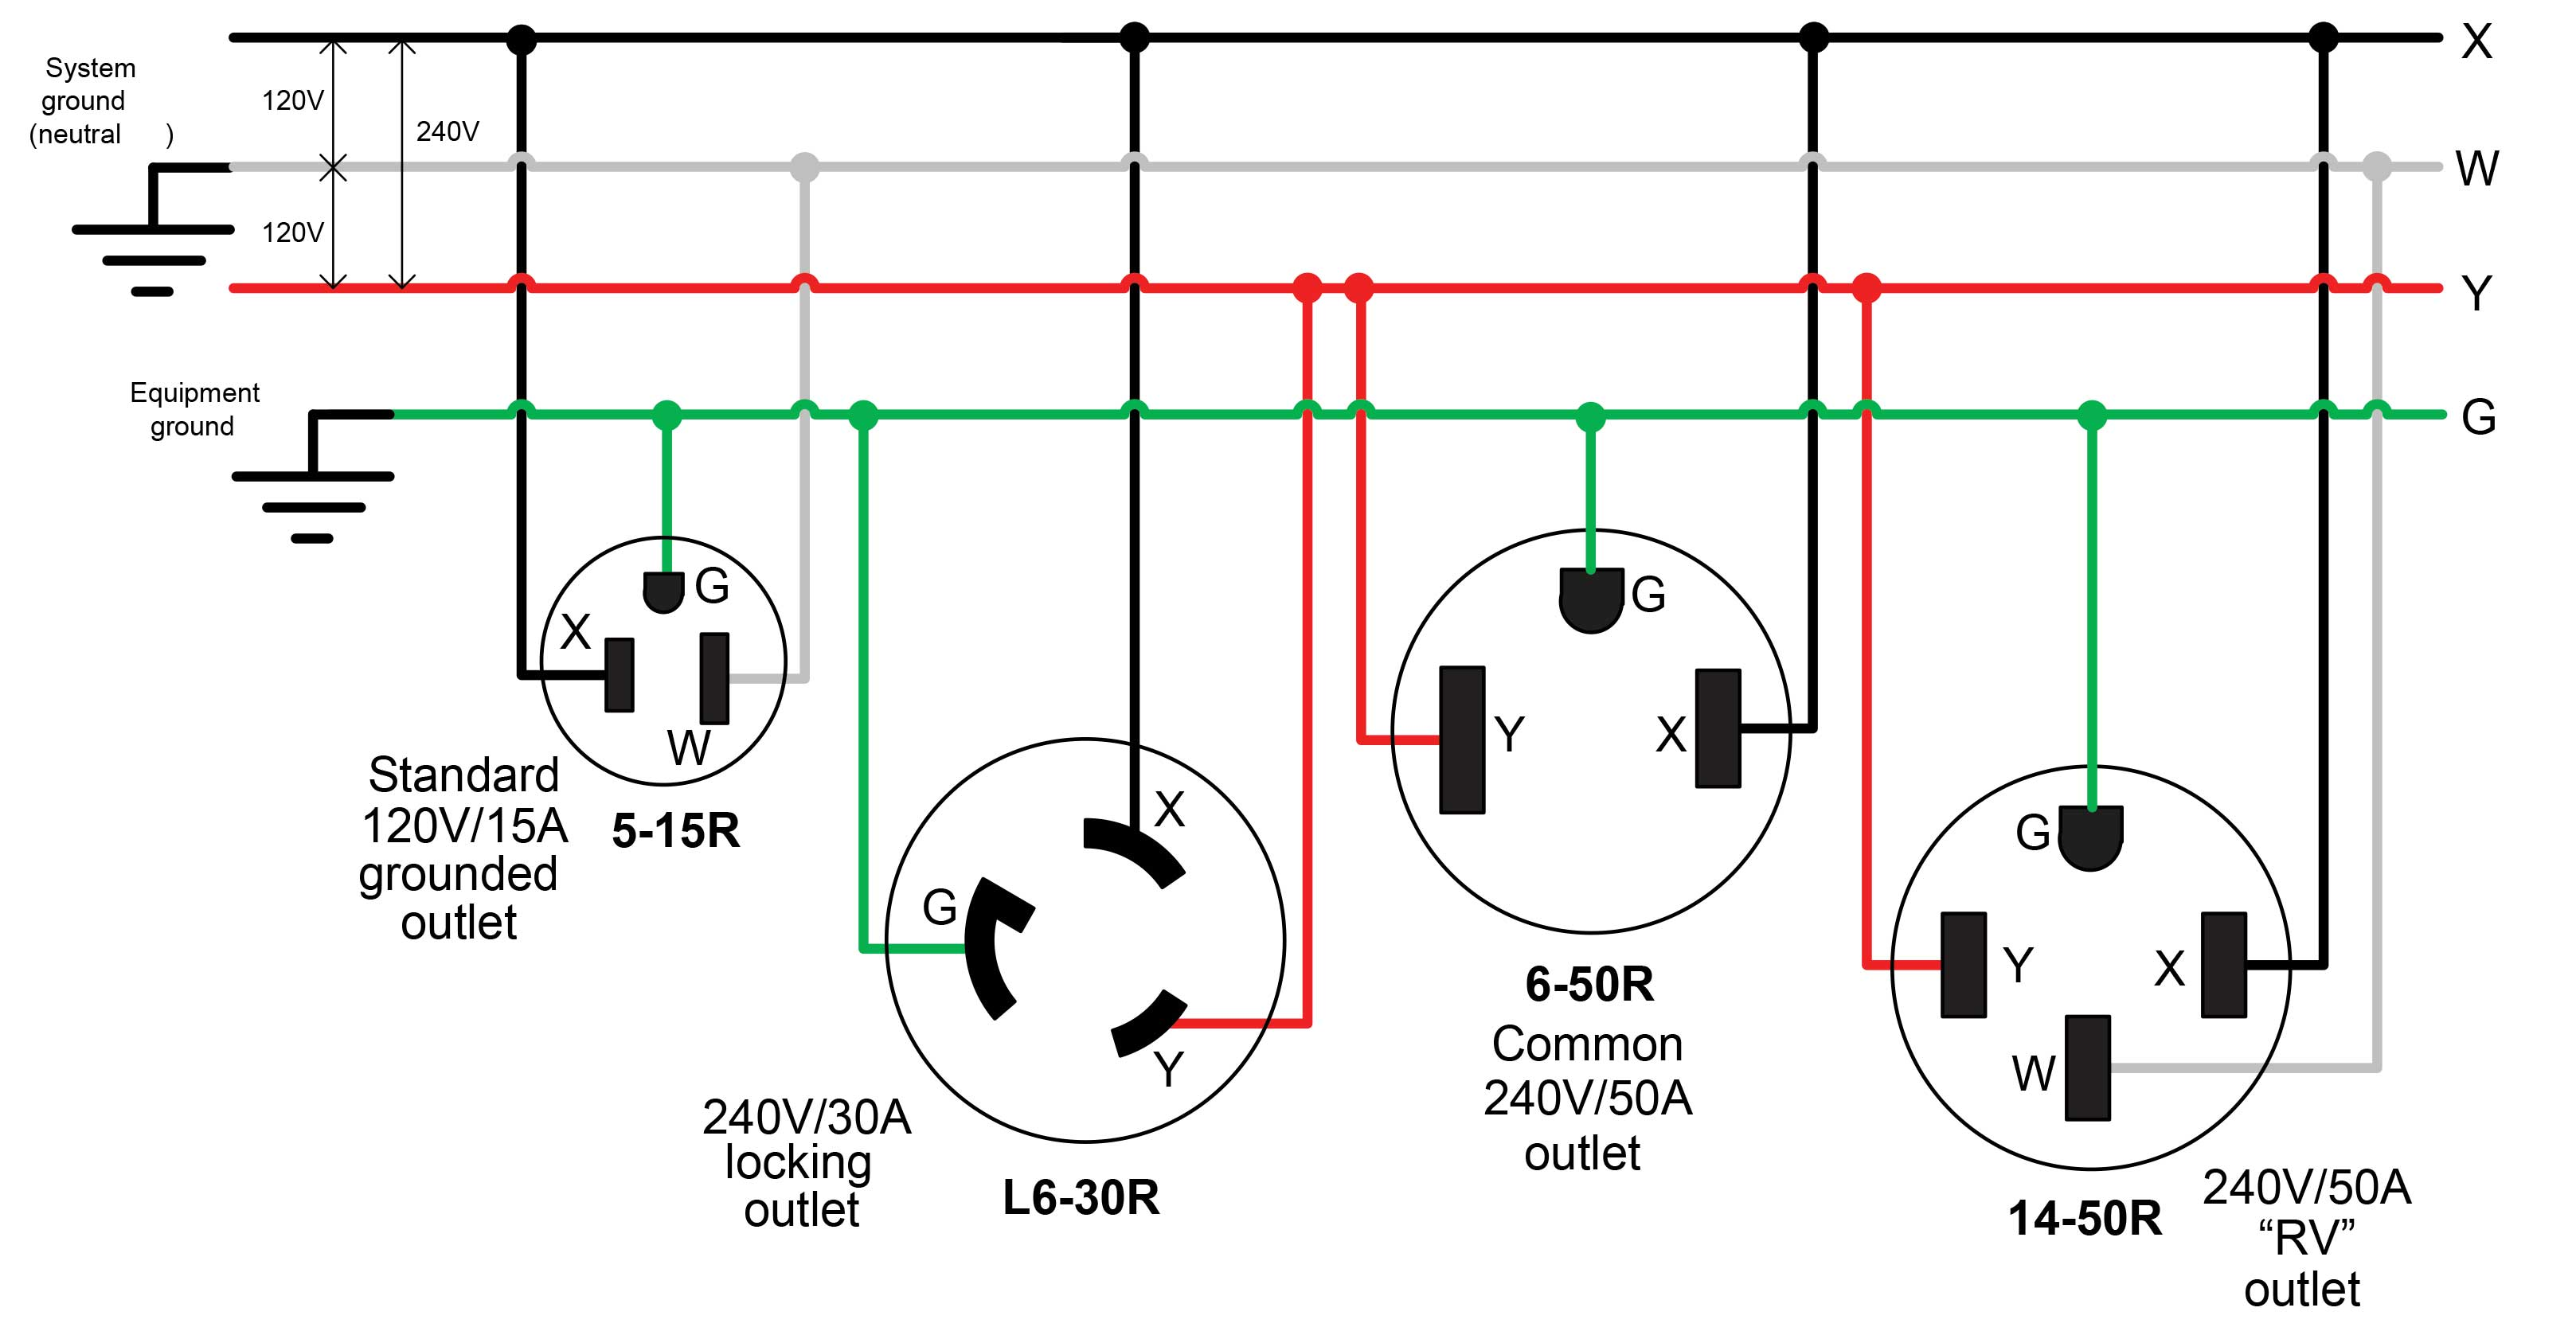 L14 30 Plug Generator further Post 3 Prong Dryer Outlet Wiring Diagram 348324 moreover 14 30p 6 50r Wiring also Iec Receptacle Wiring Diagram moreover Viewtopic. on twist lock electrical outlet wiring diagram